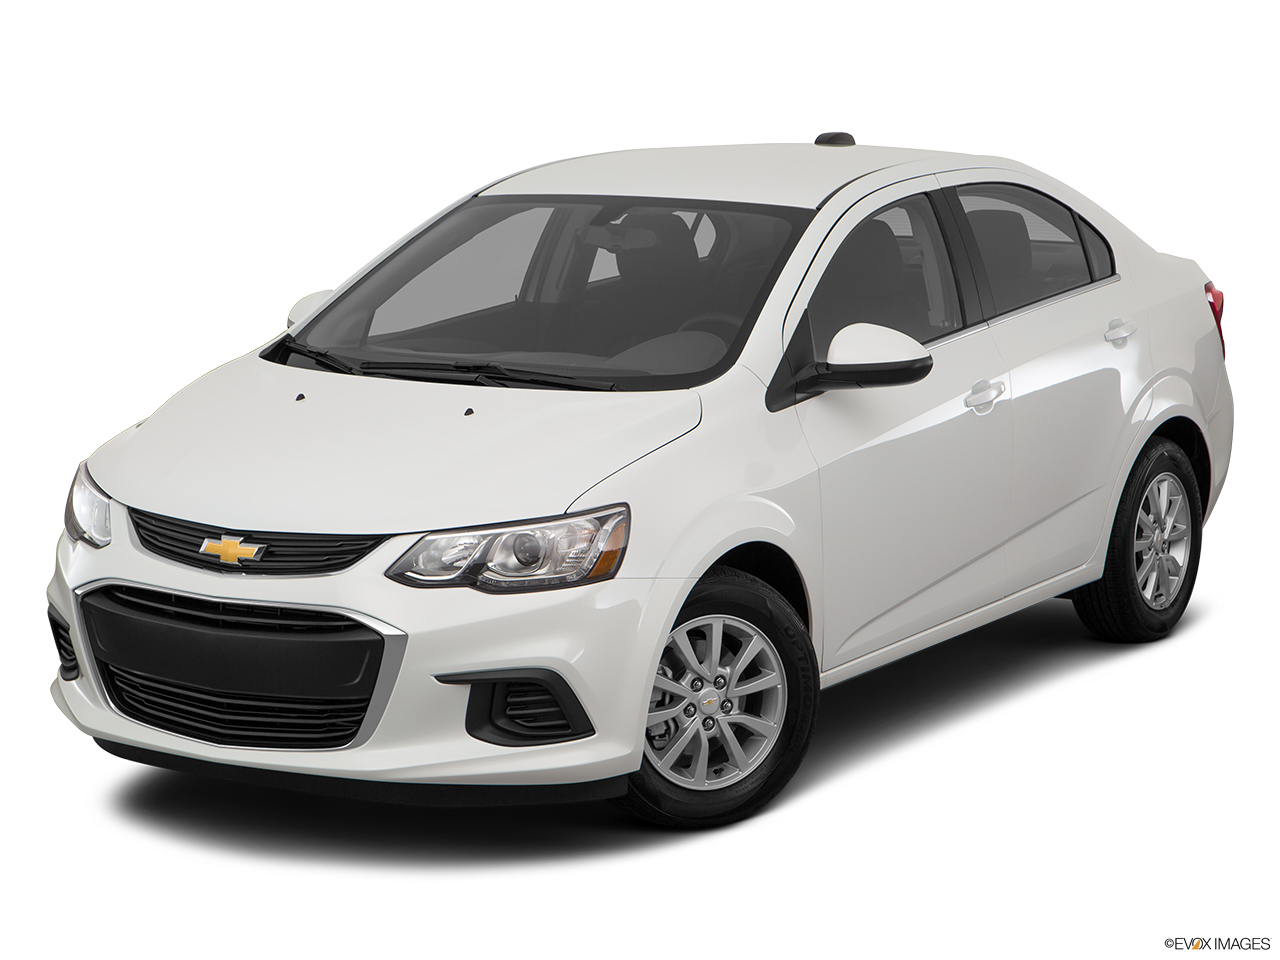 Chevrolet Sonic 2017 1.6 Base Sedan, Bahrain, Front angle view.